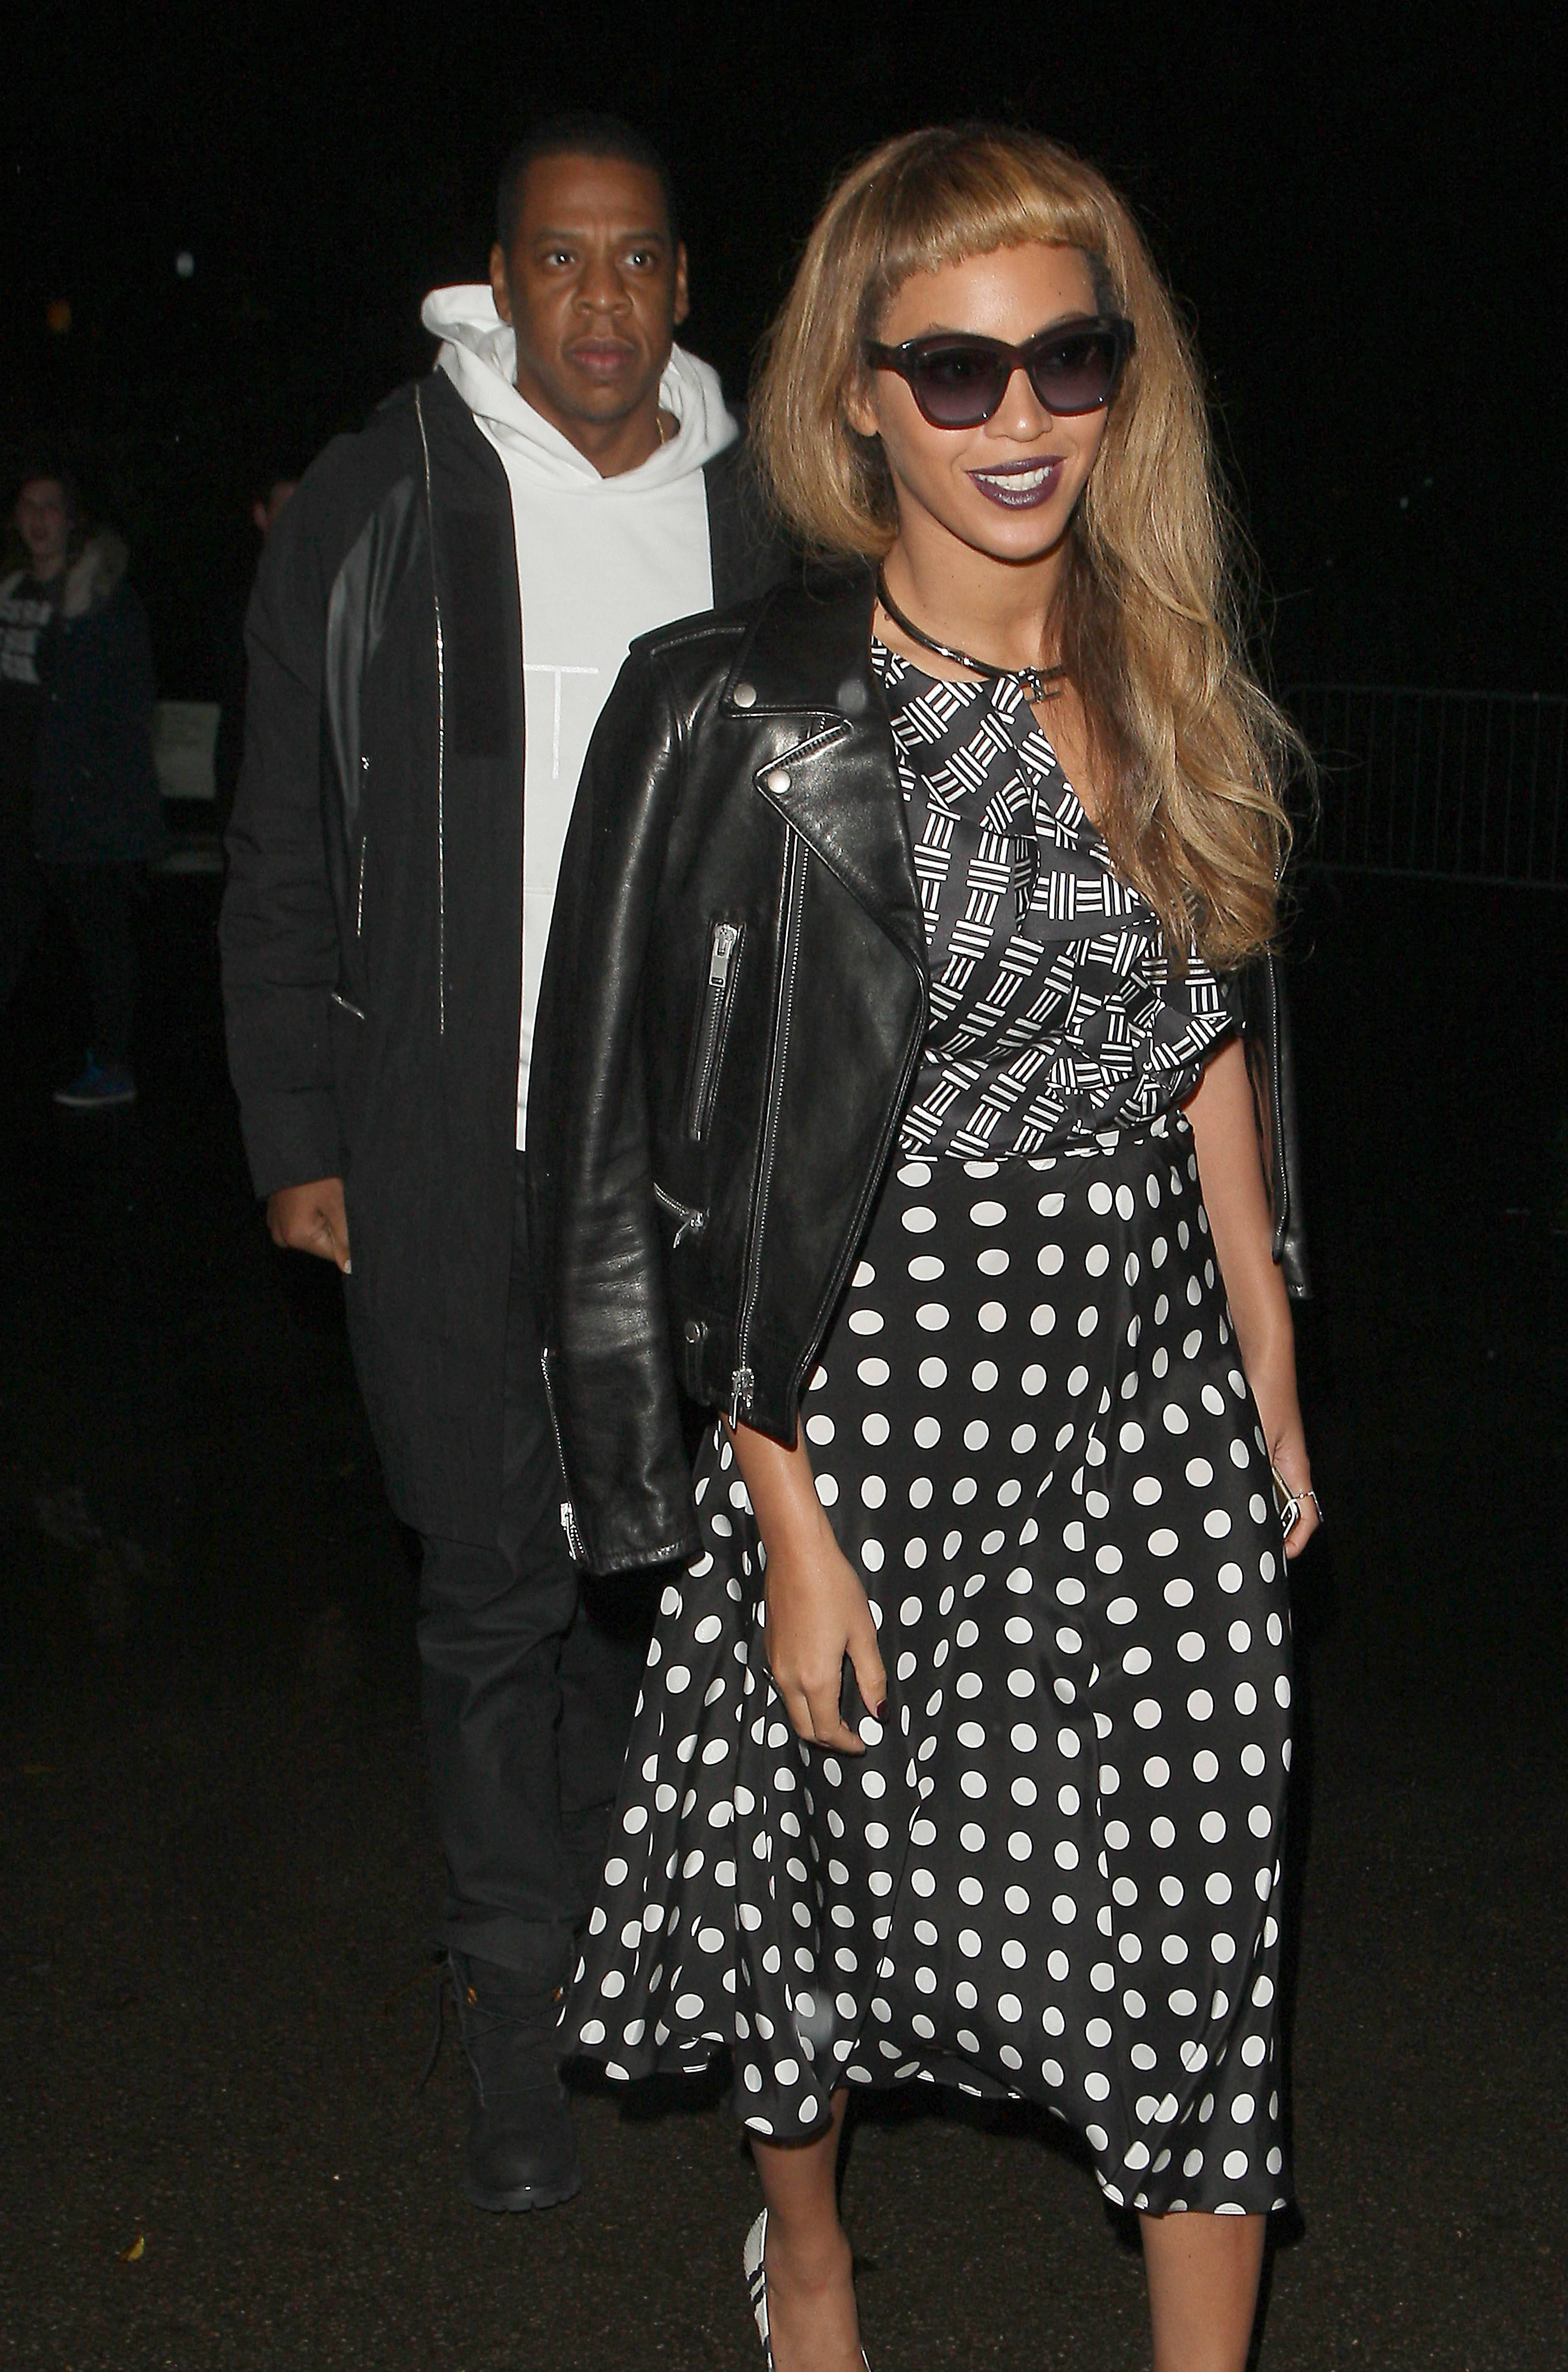 The Carter's Renew Their Vows - Beyonc? and Jay Z are still crazy in love. According to reports, hip hop's power couple renewed their vows while they were galavanting in Europe over the past few weeks.  (Photo: Splash News)